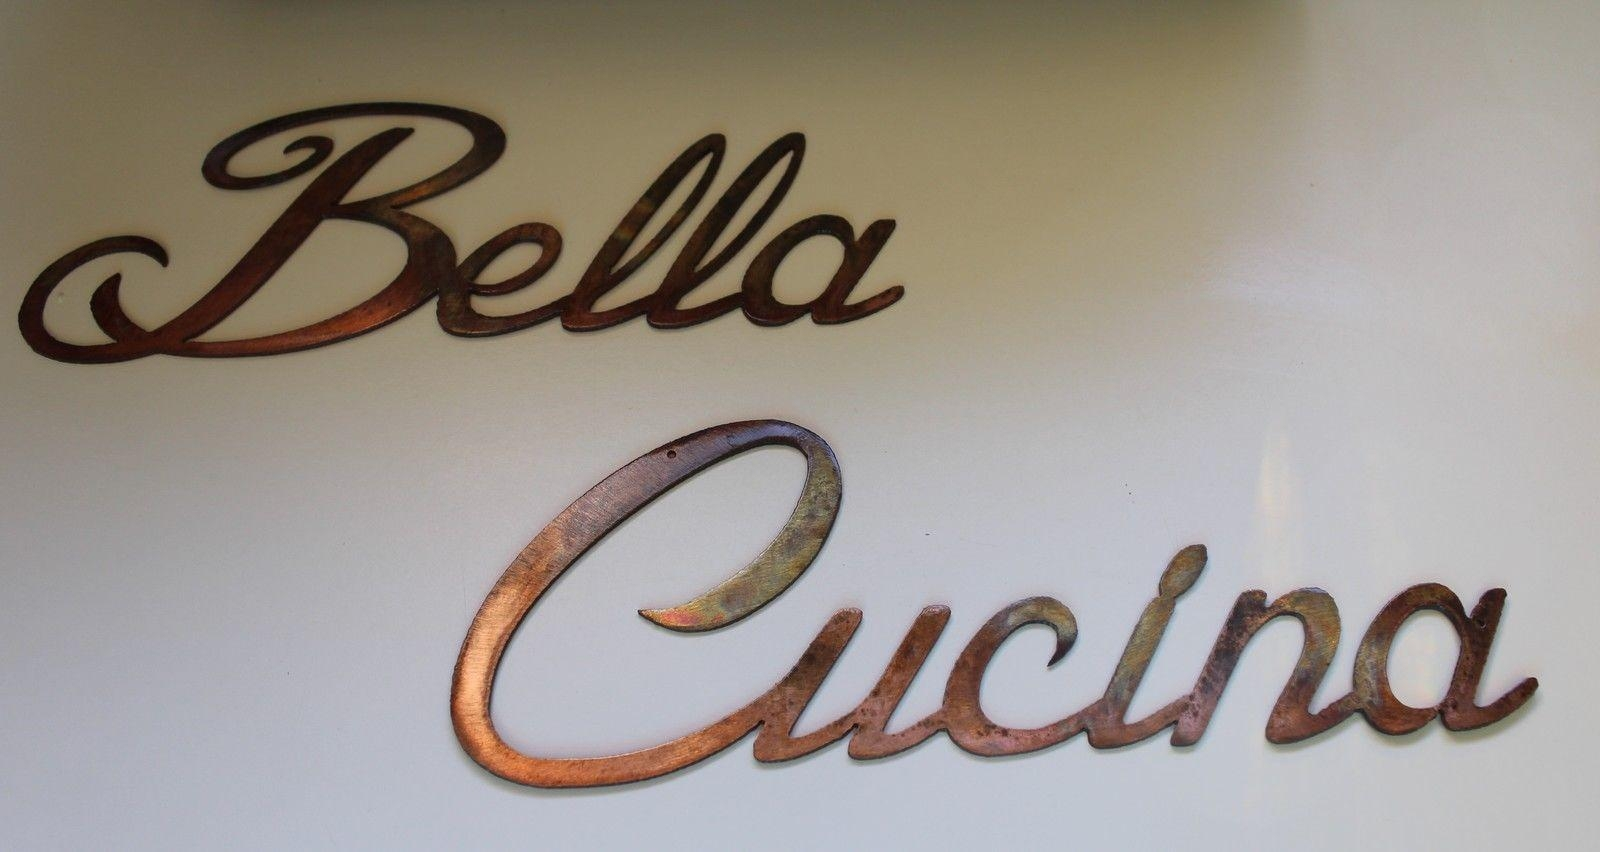 Bella Cucina Words Metal Wall Art Accents For Cucina Wall Art (Image 3 of 20)